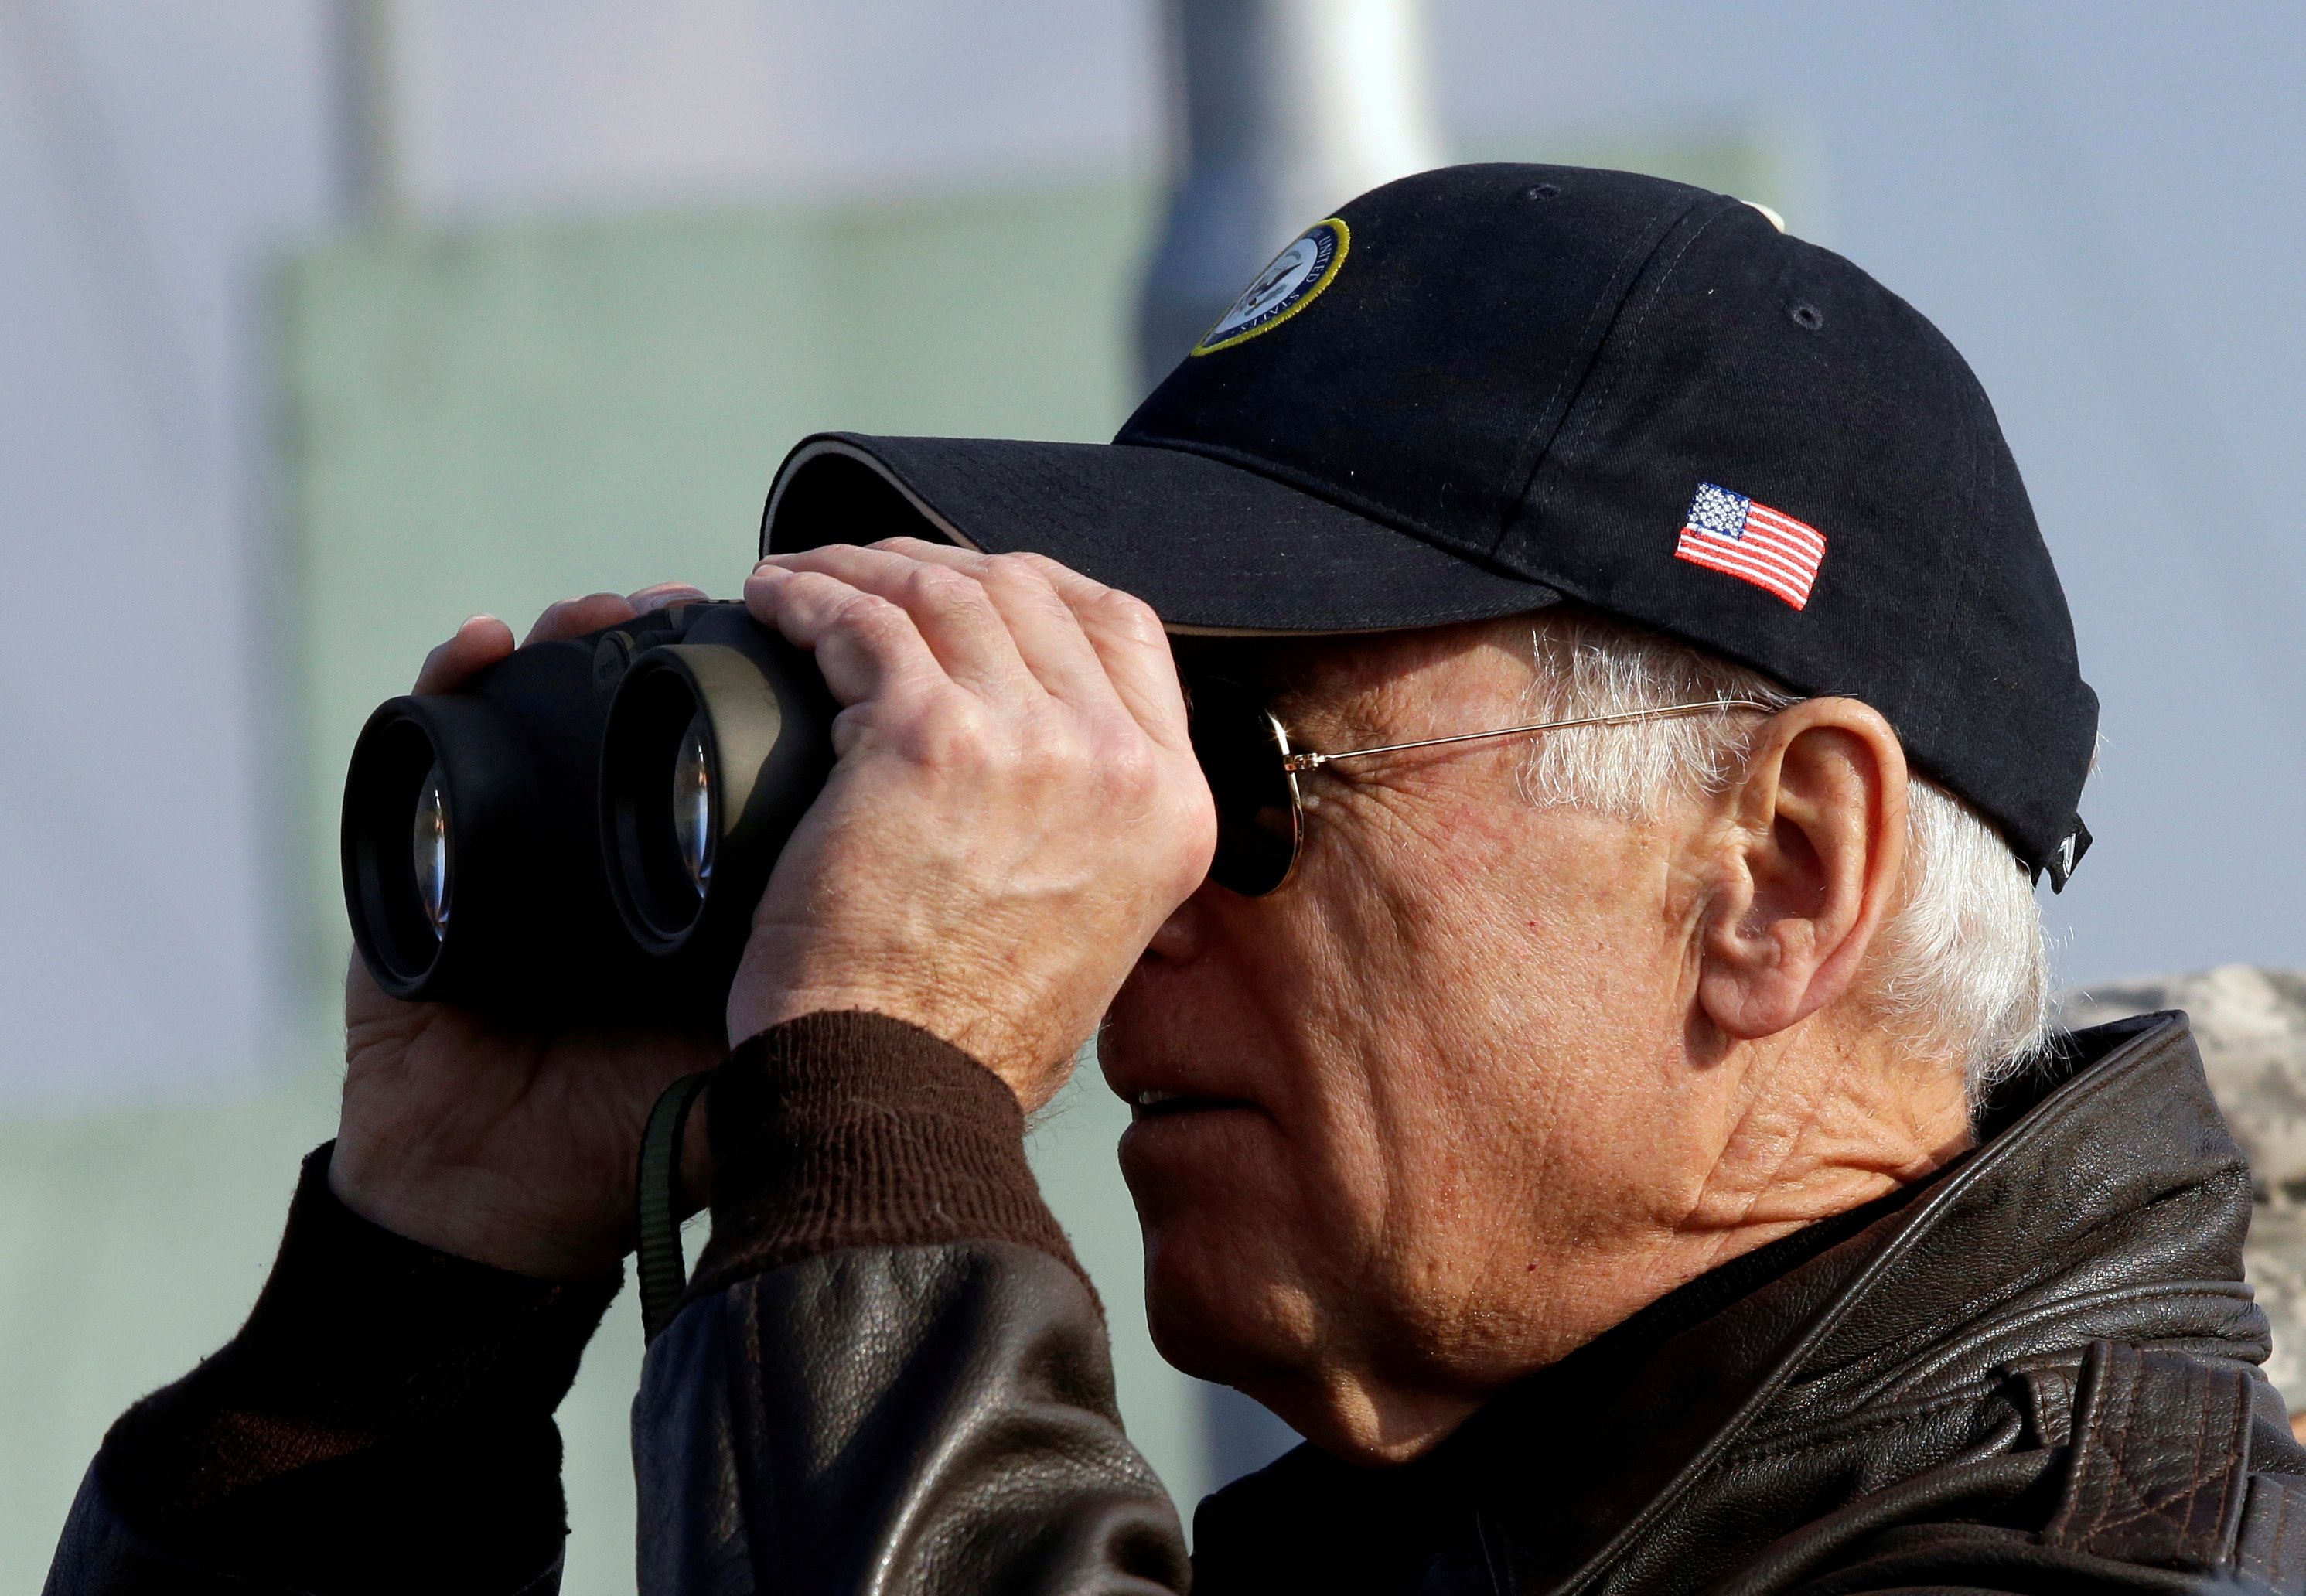 U.S. Vice President Joe Biden looks through binoculars to see North Korea from Observation Post Ouellette during a tour of the Demilitarized Zone (DMZ), the military border separating the two Koreas, in Panmunjom, December 7, 2013. REUTERS/Lee Jin-man/Pool